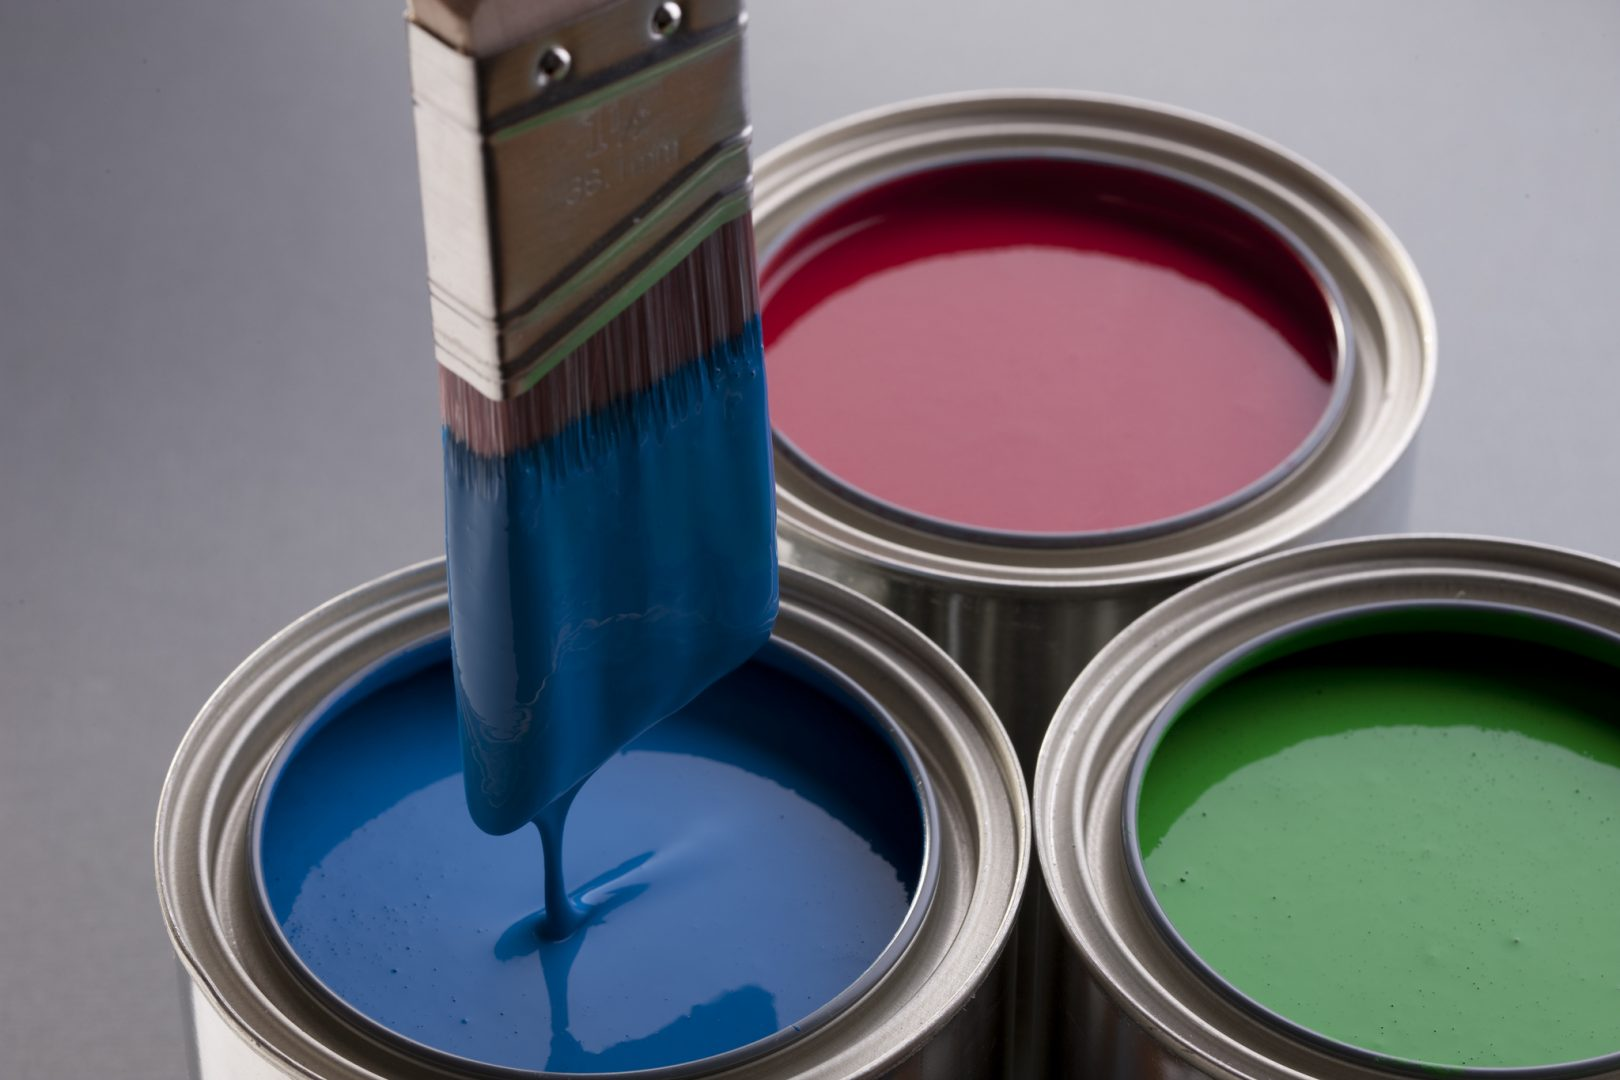 House Painters - Cumming, GA - Blue Green Red Paint Cans